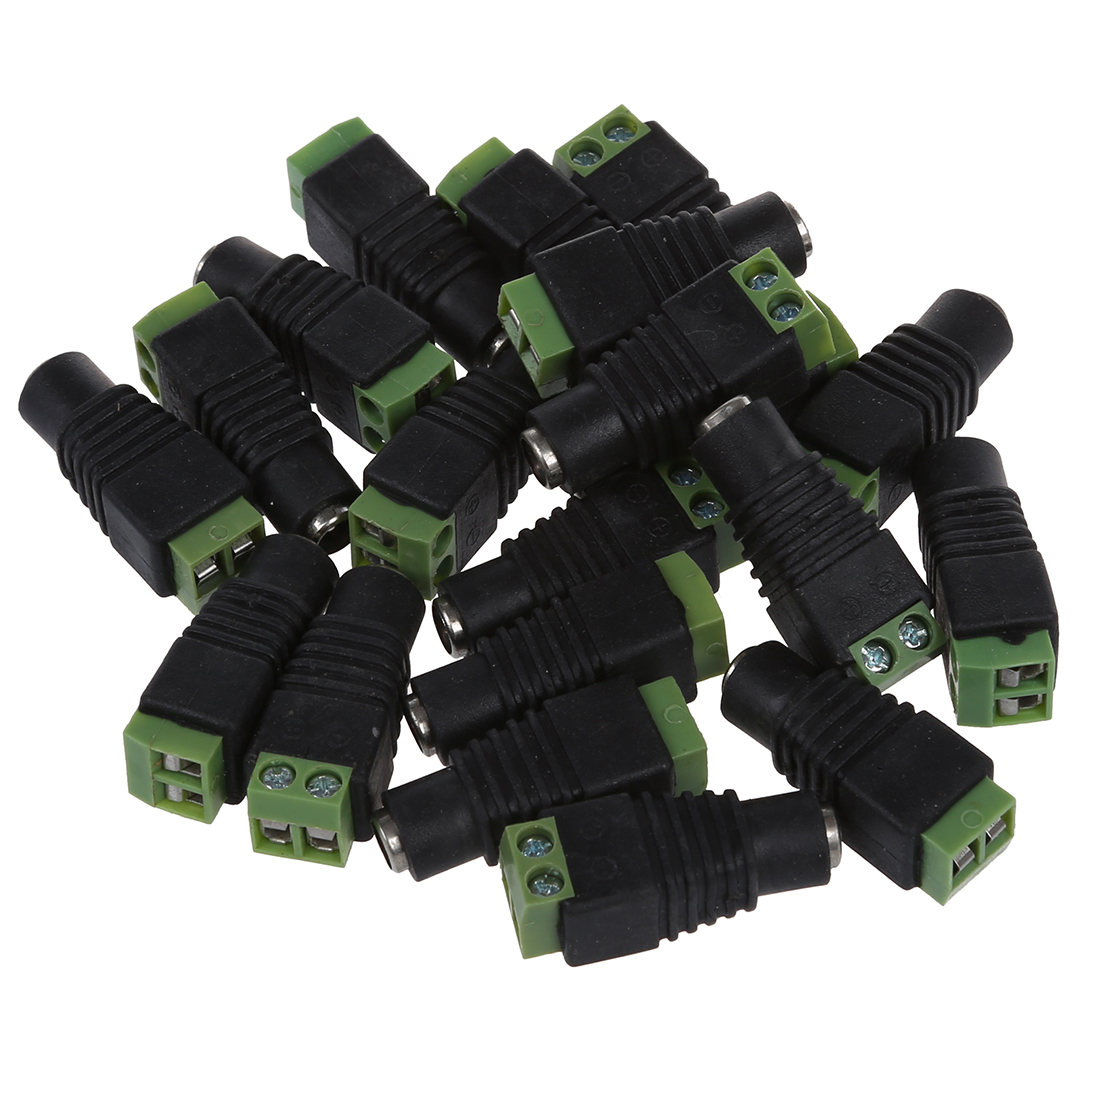 20pcs CCTV Camera 5.5 x 2.1mm DC Power Cable Female Plug Connector Adapter Jack